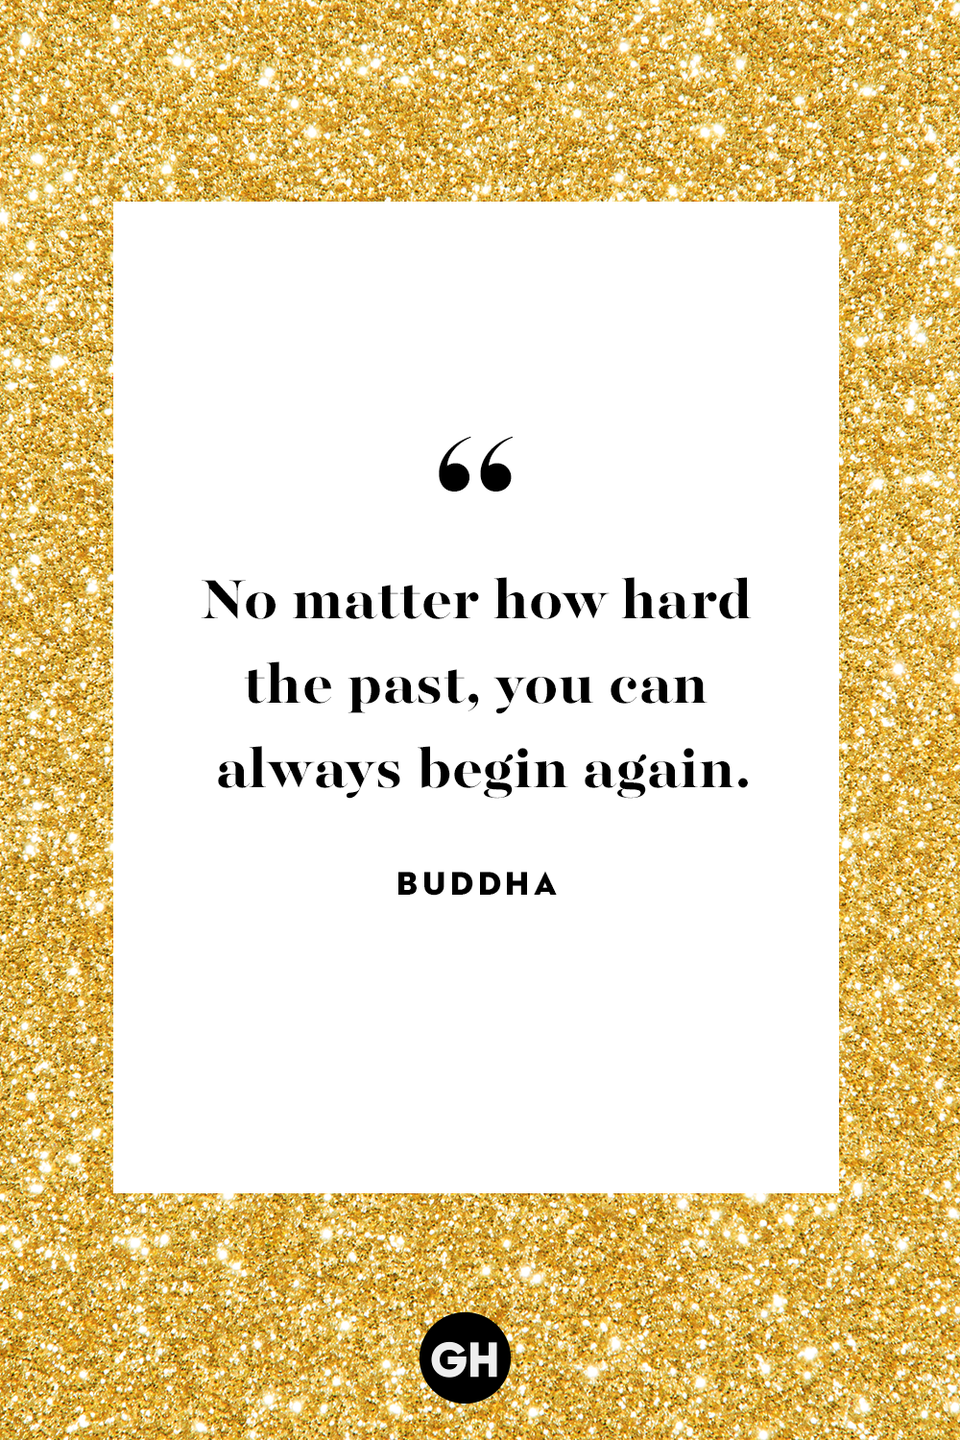 "<p> ""No matter how hard the past, you can always begin again.""</p>"